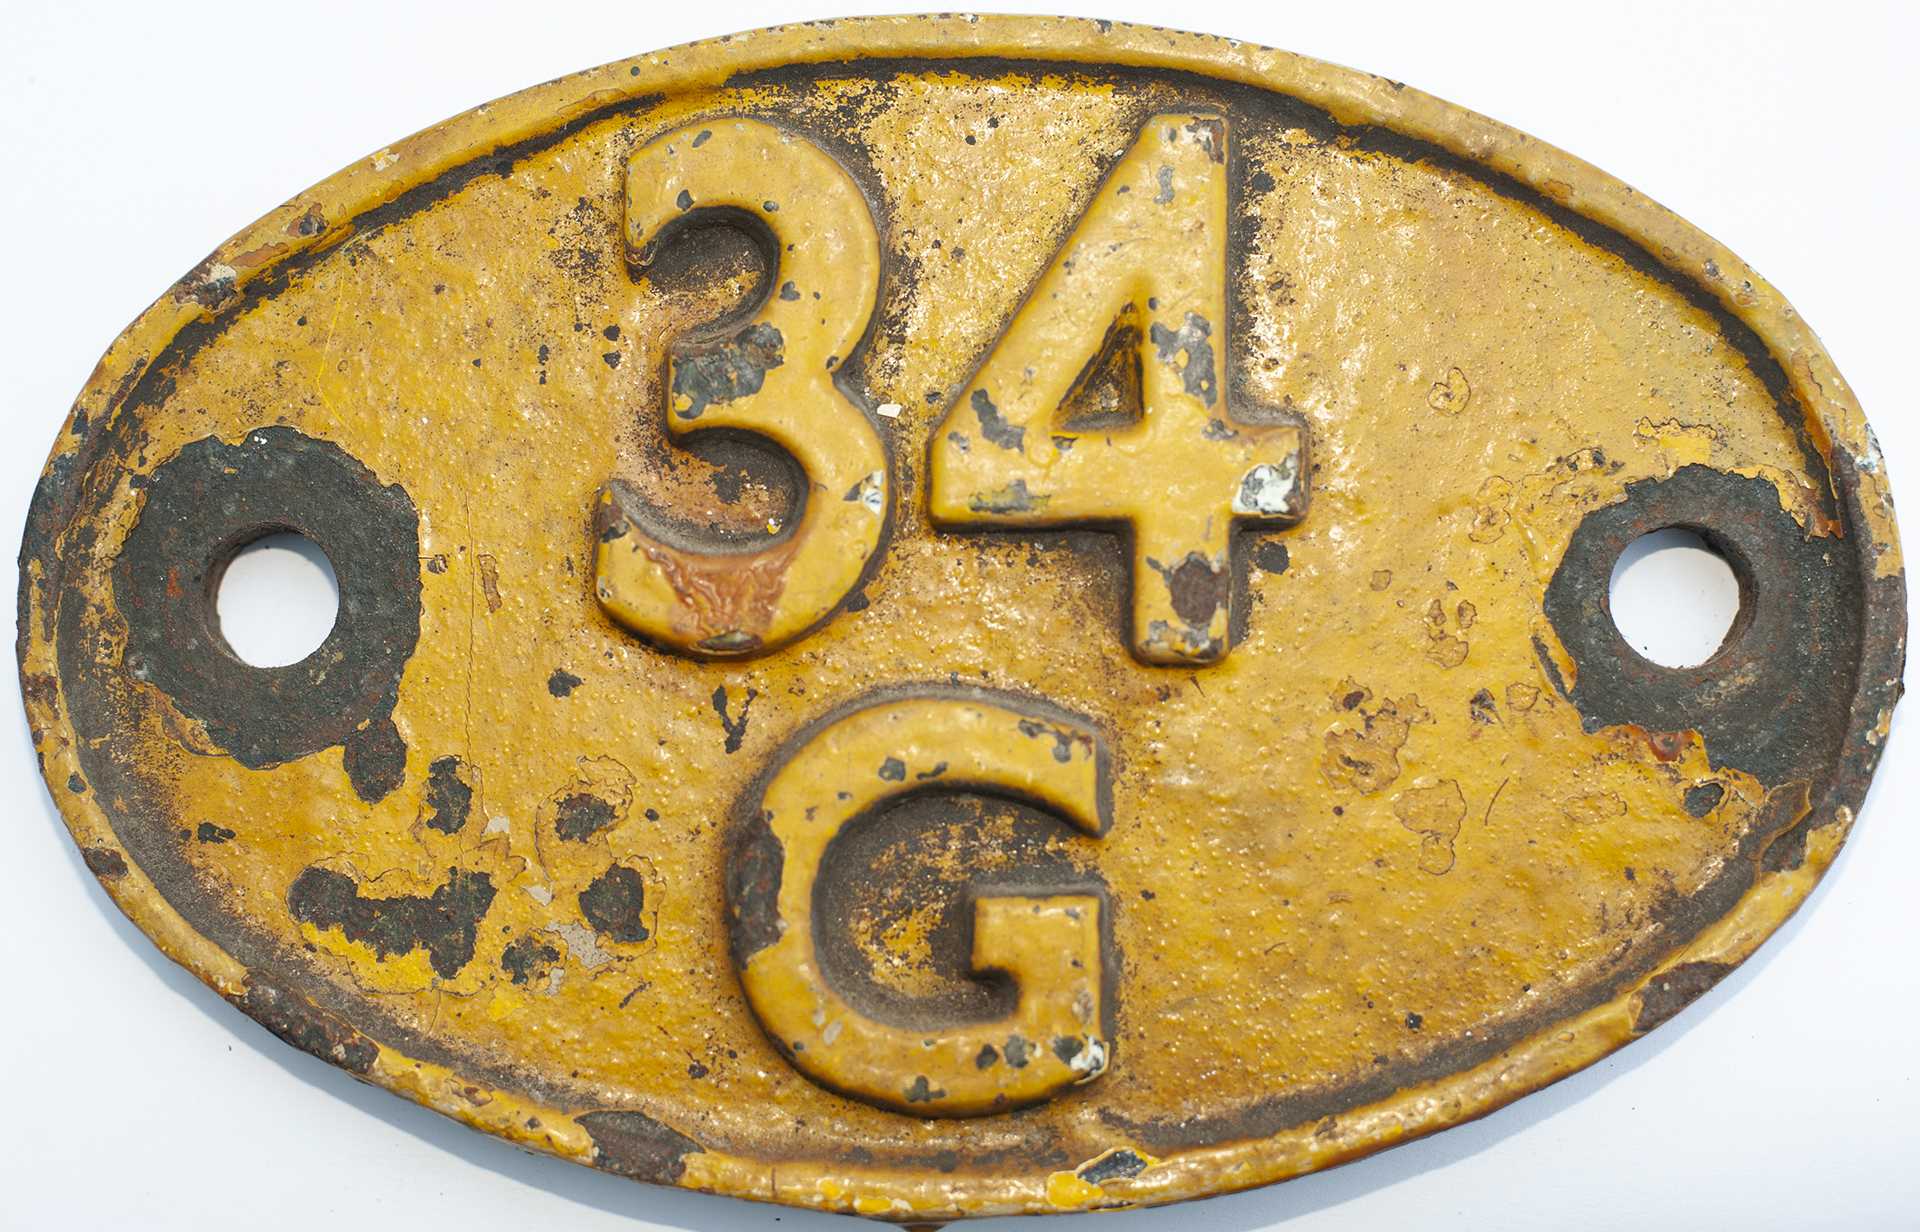 Shedplate 34g Finsbury Park 1960-1973 With A Sub